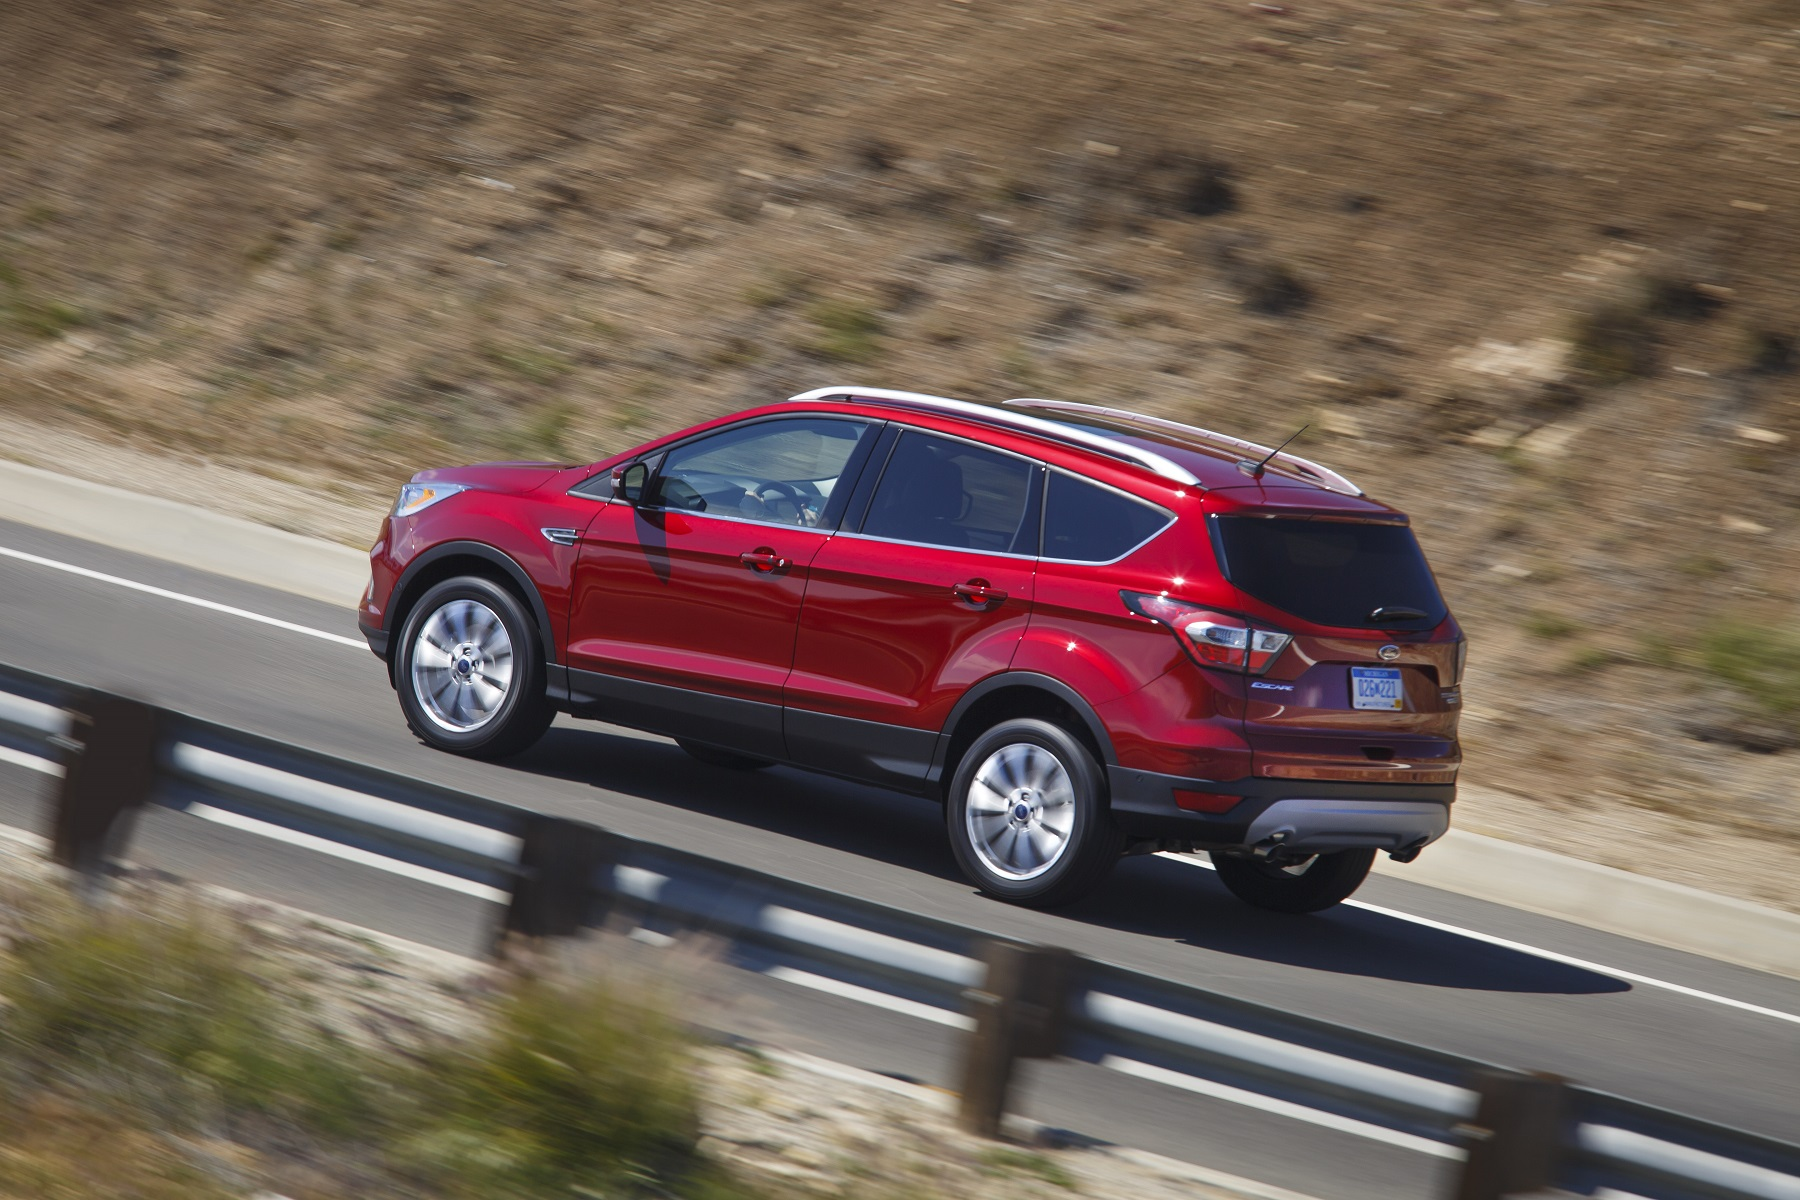 Manufacturer photo: The Ford Escape is significantly updated for model year 2017 with more of what Escape customers said they wanted -- the latest driver-assist technologies, connectivity and two new fun-to-drive and efficient EcoBoost engines